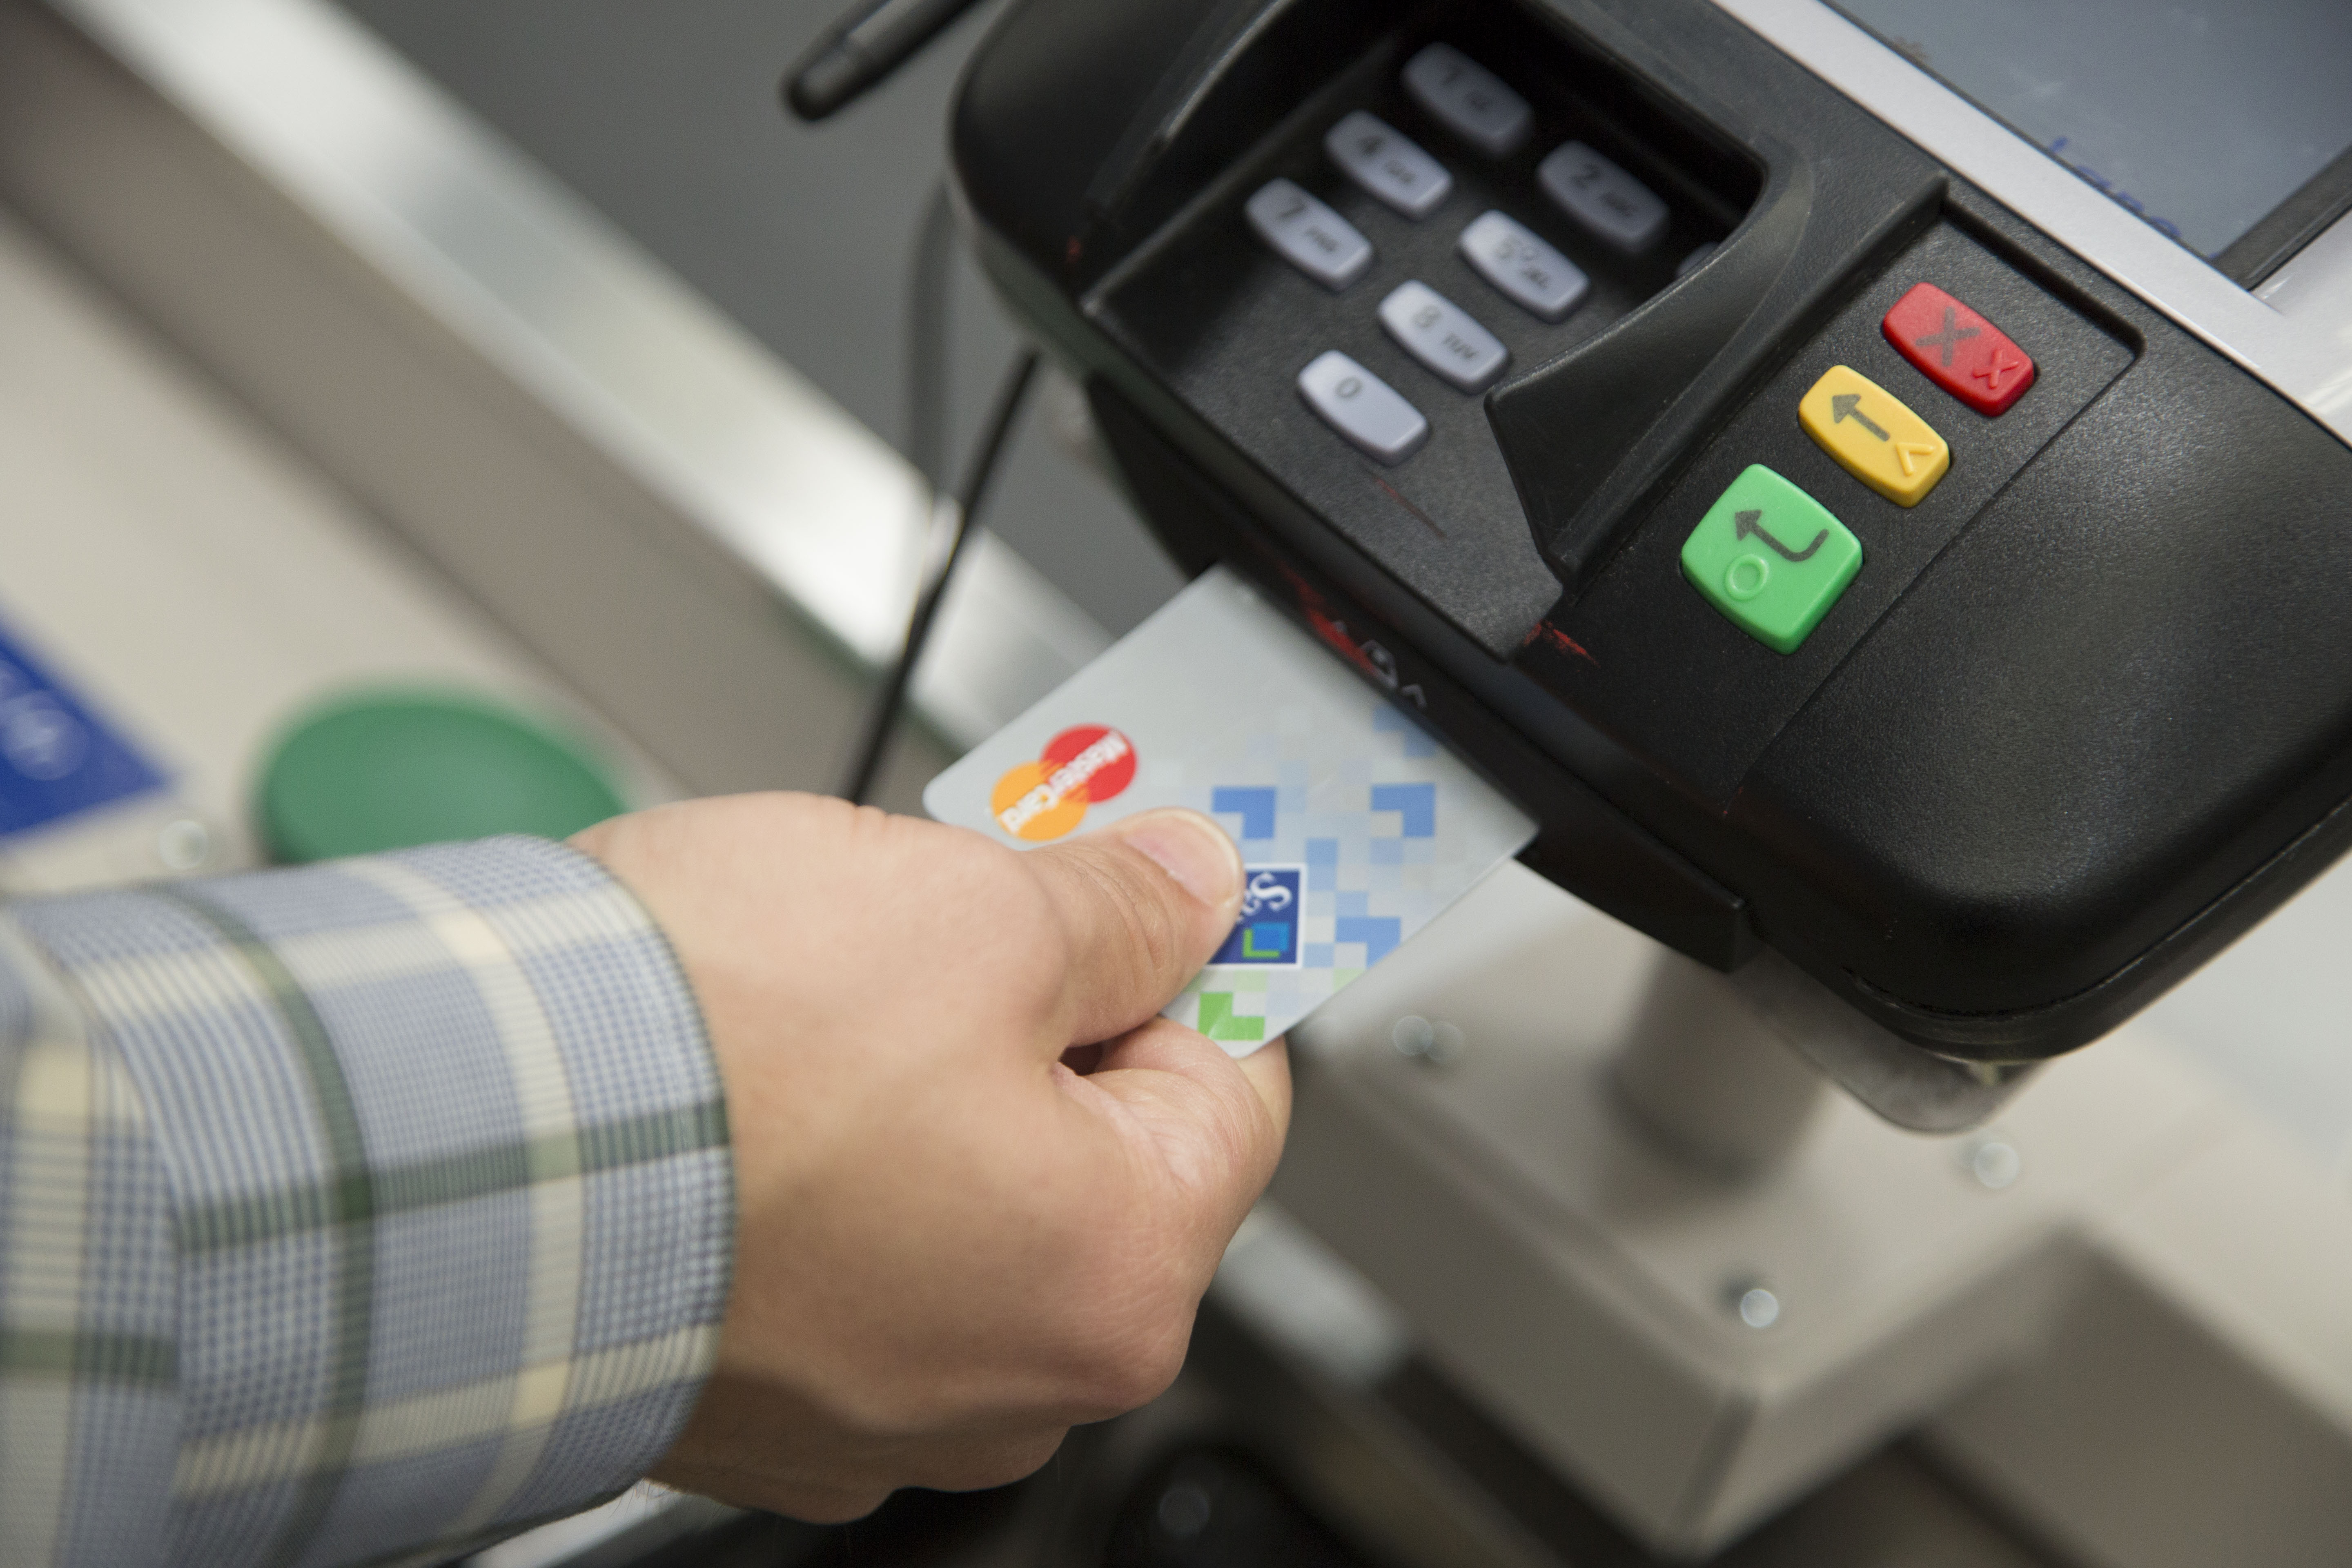 using the MasterCard featuring chip into a card reader